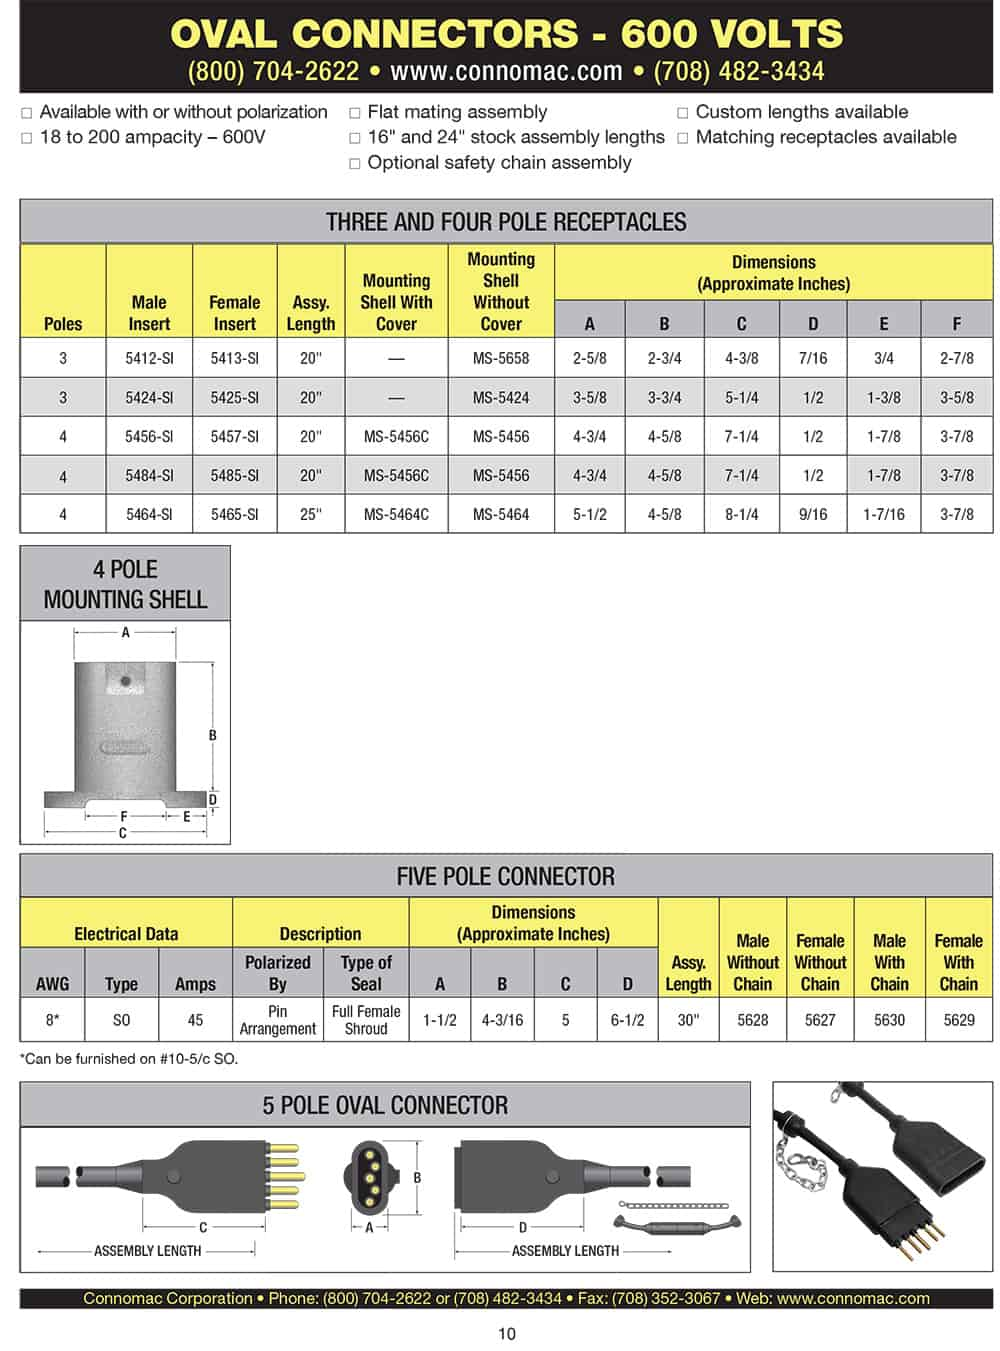 3, 4 & 5 pole oval receptacle and connector spec sheet